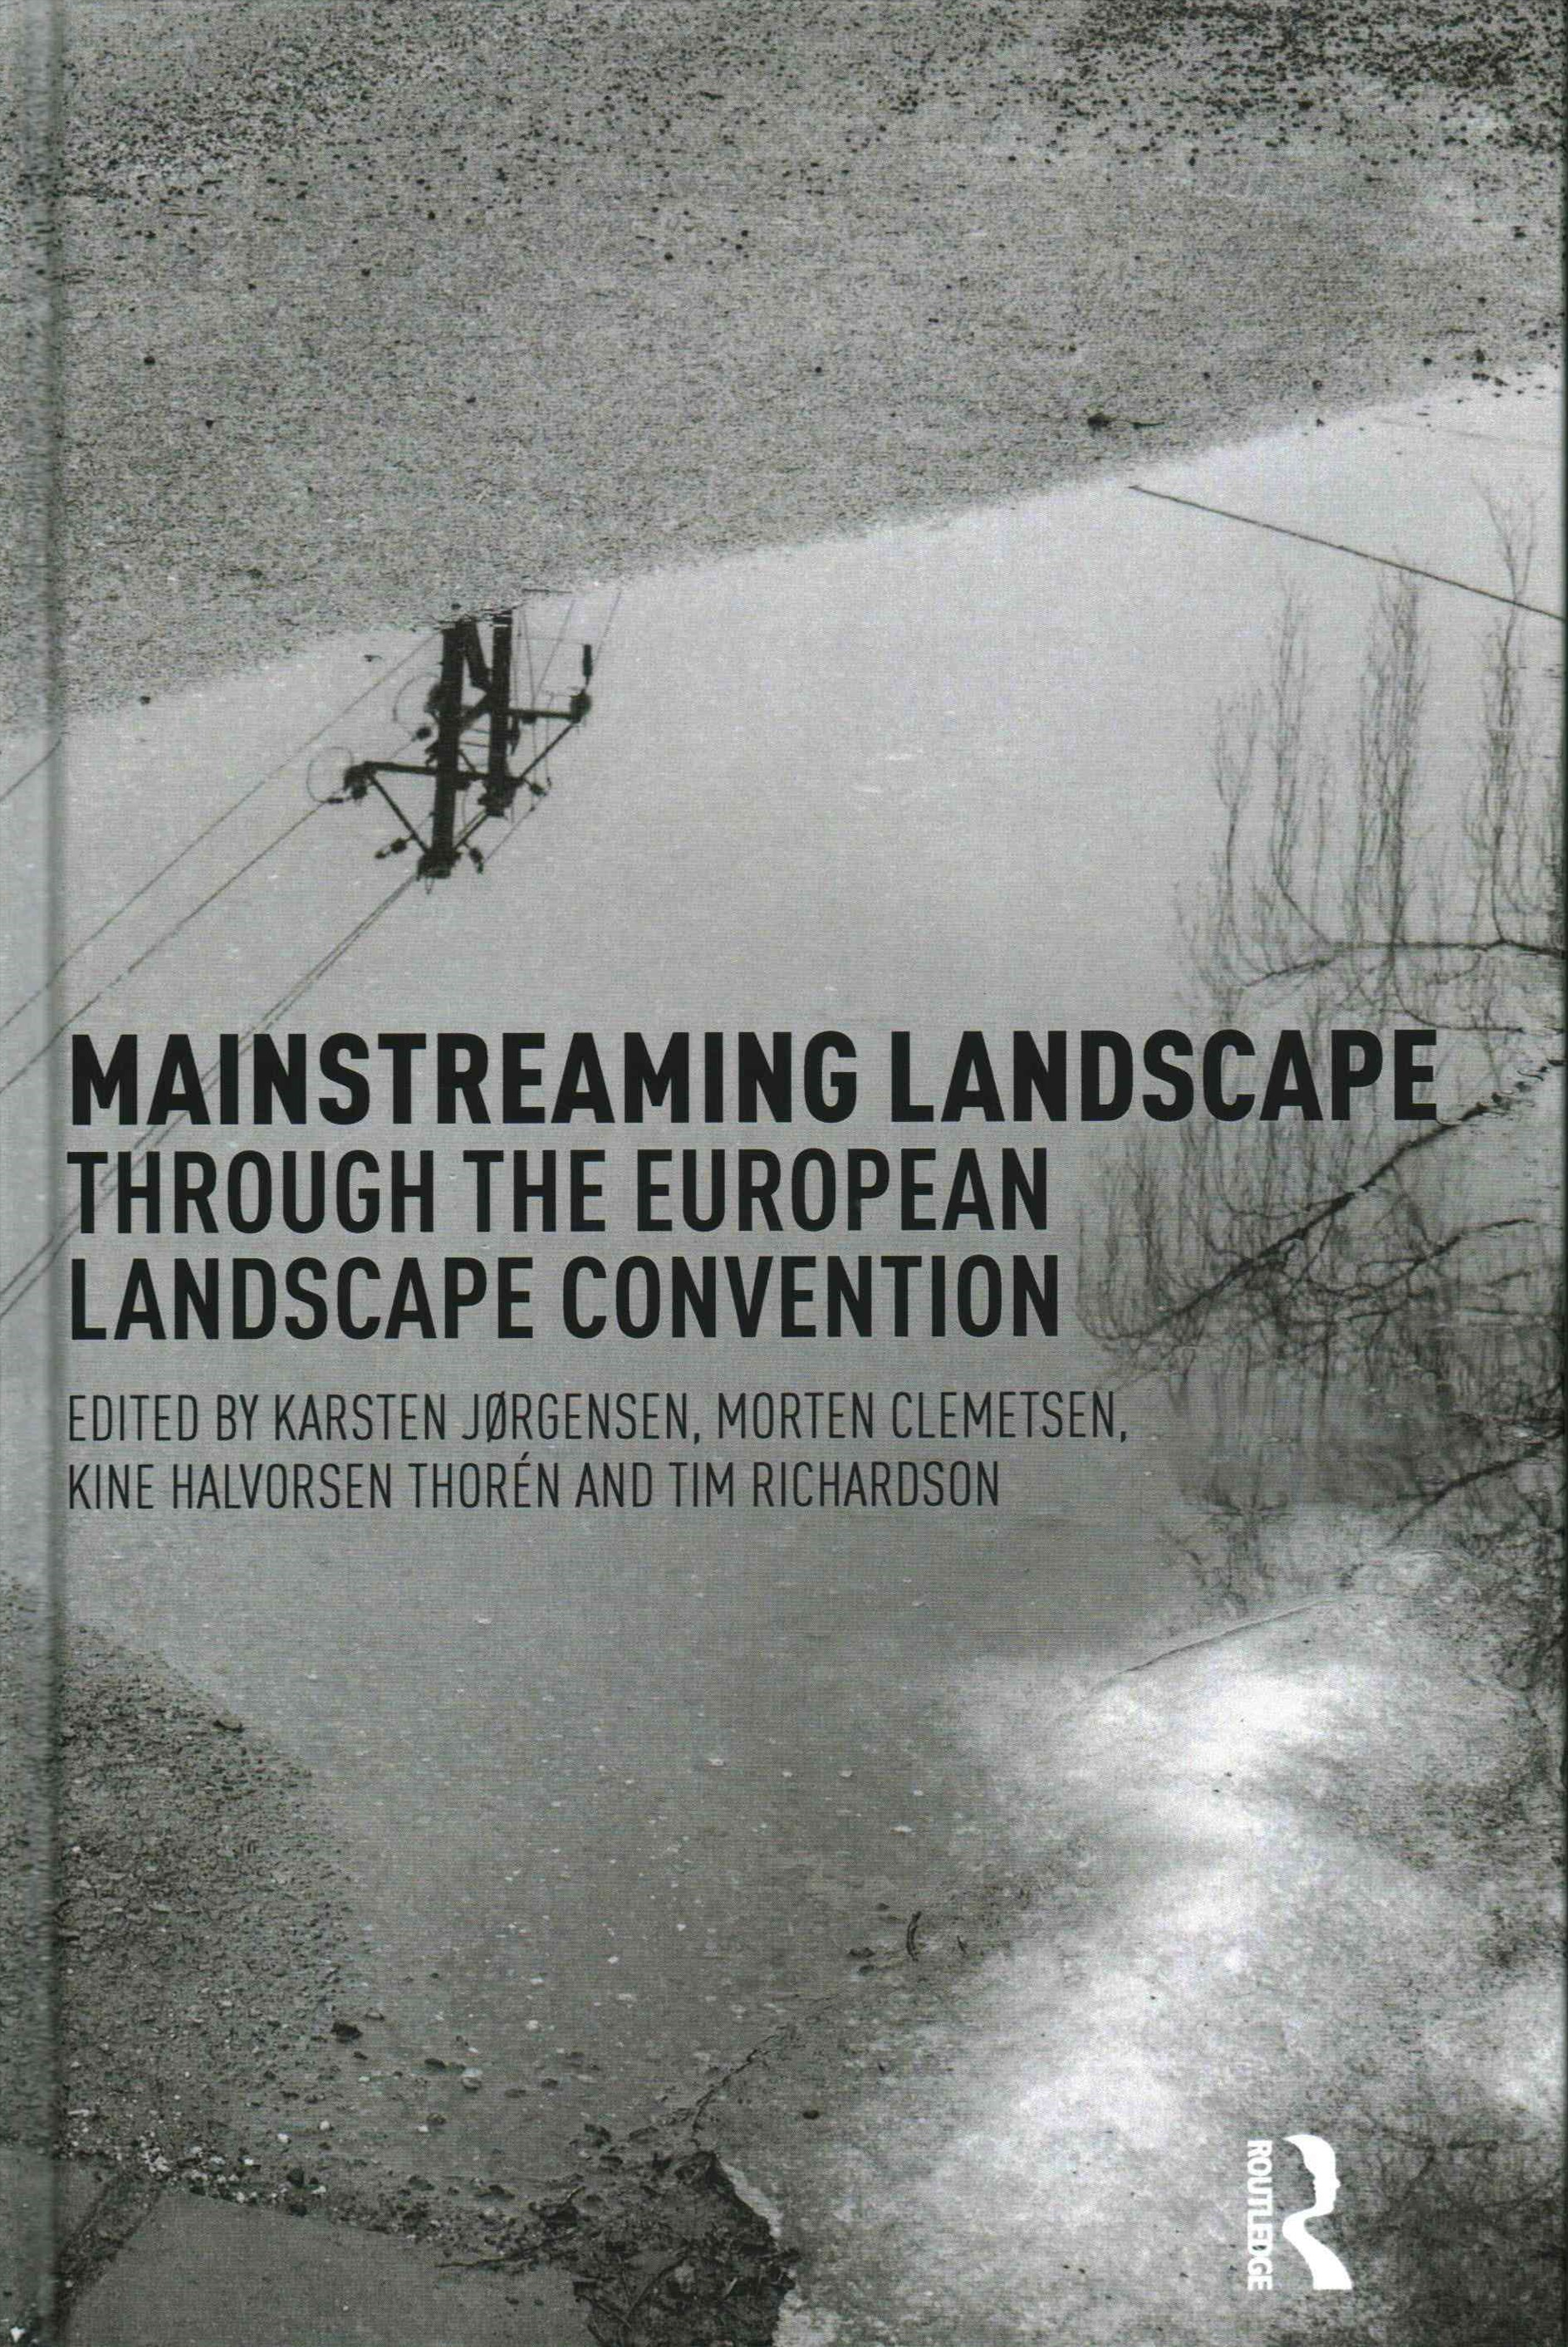 Mainstreaming Landscape Through the European Landscape Convention